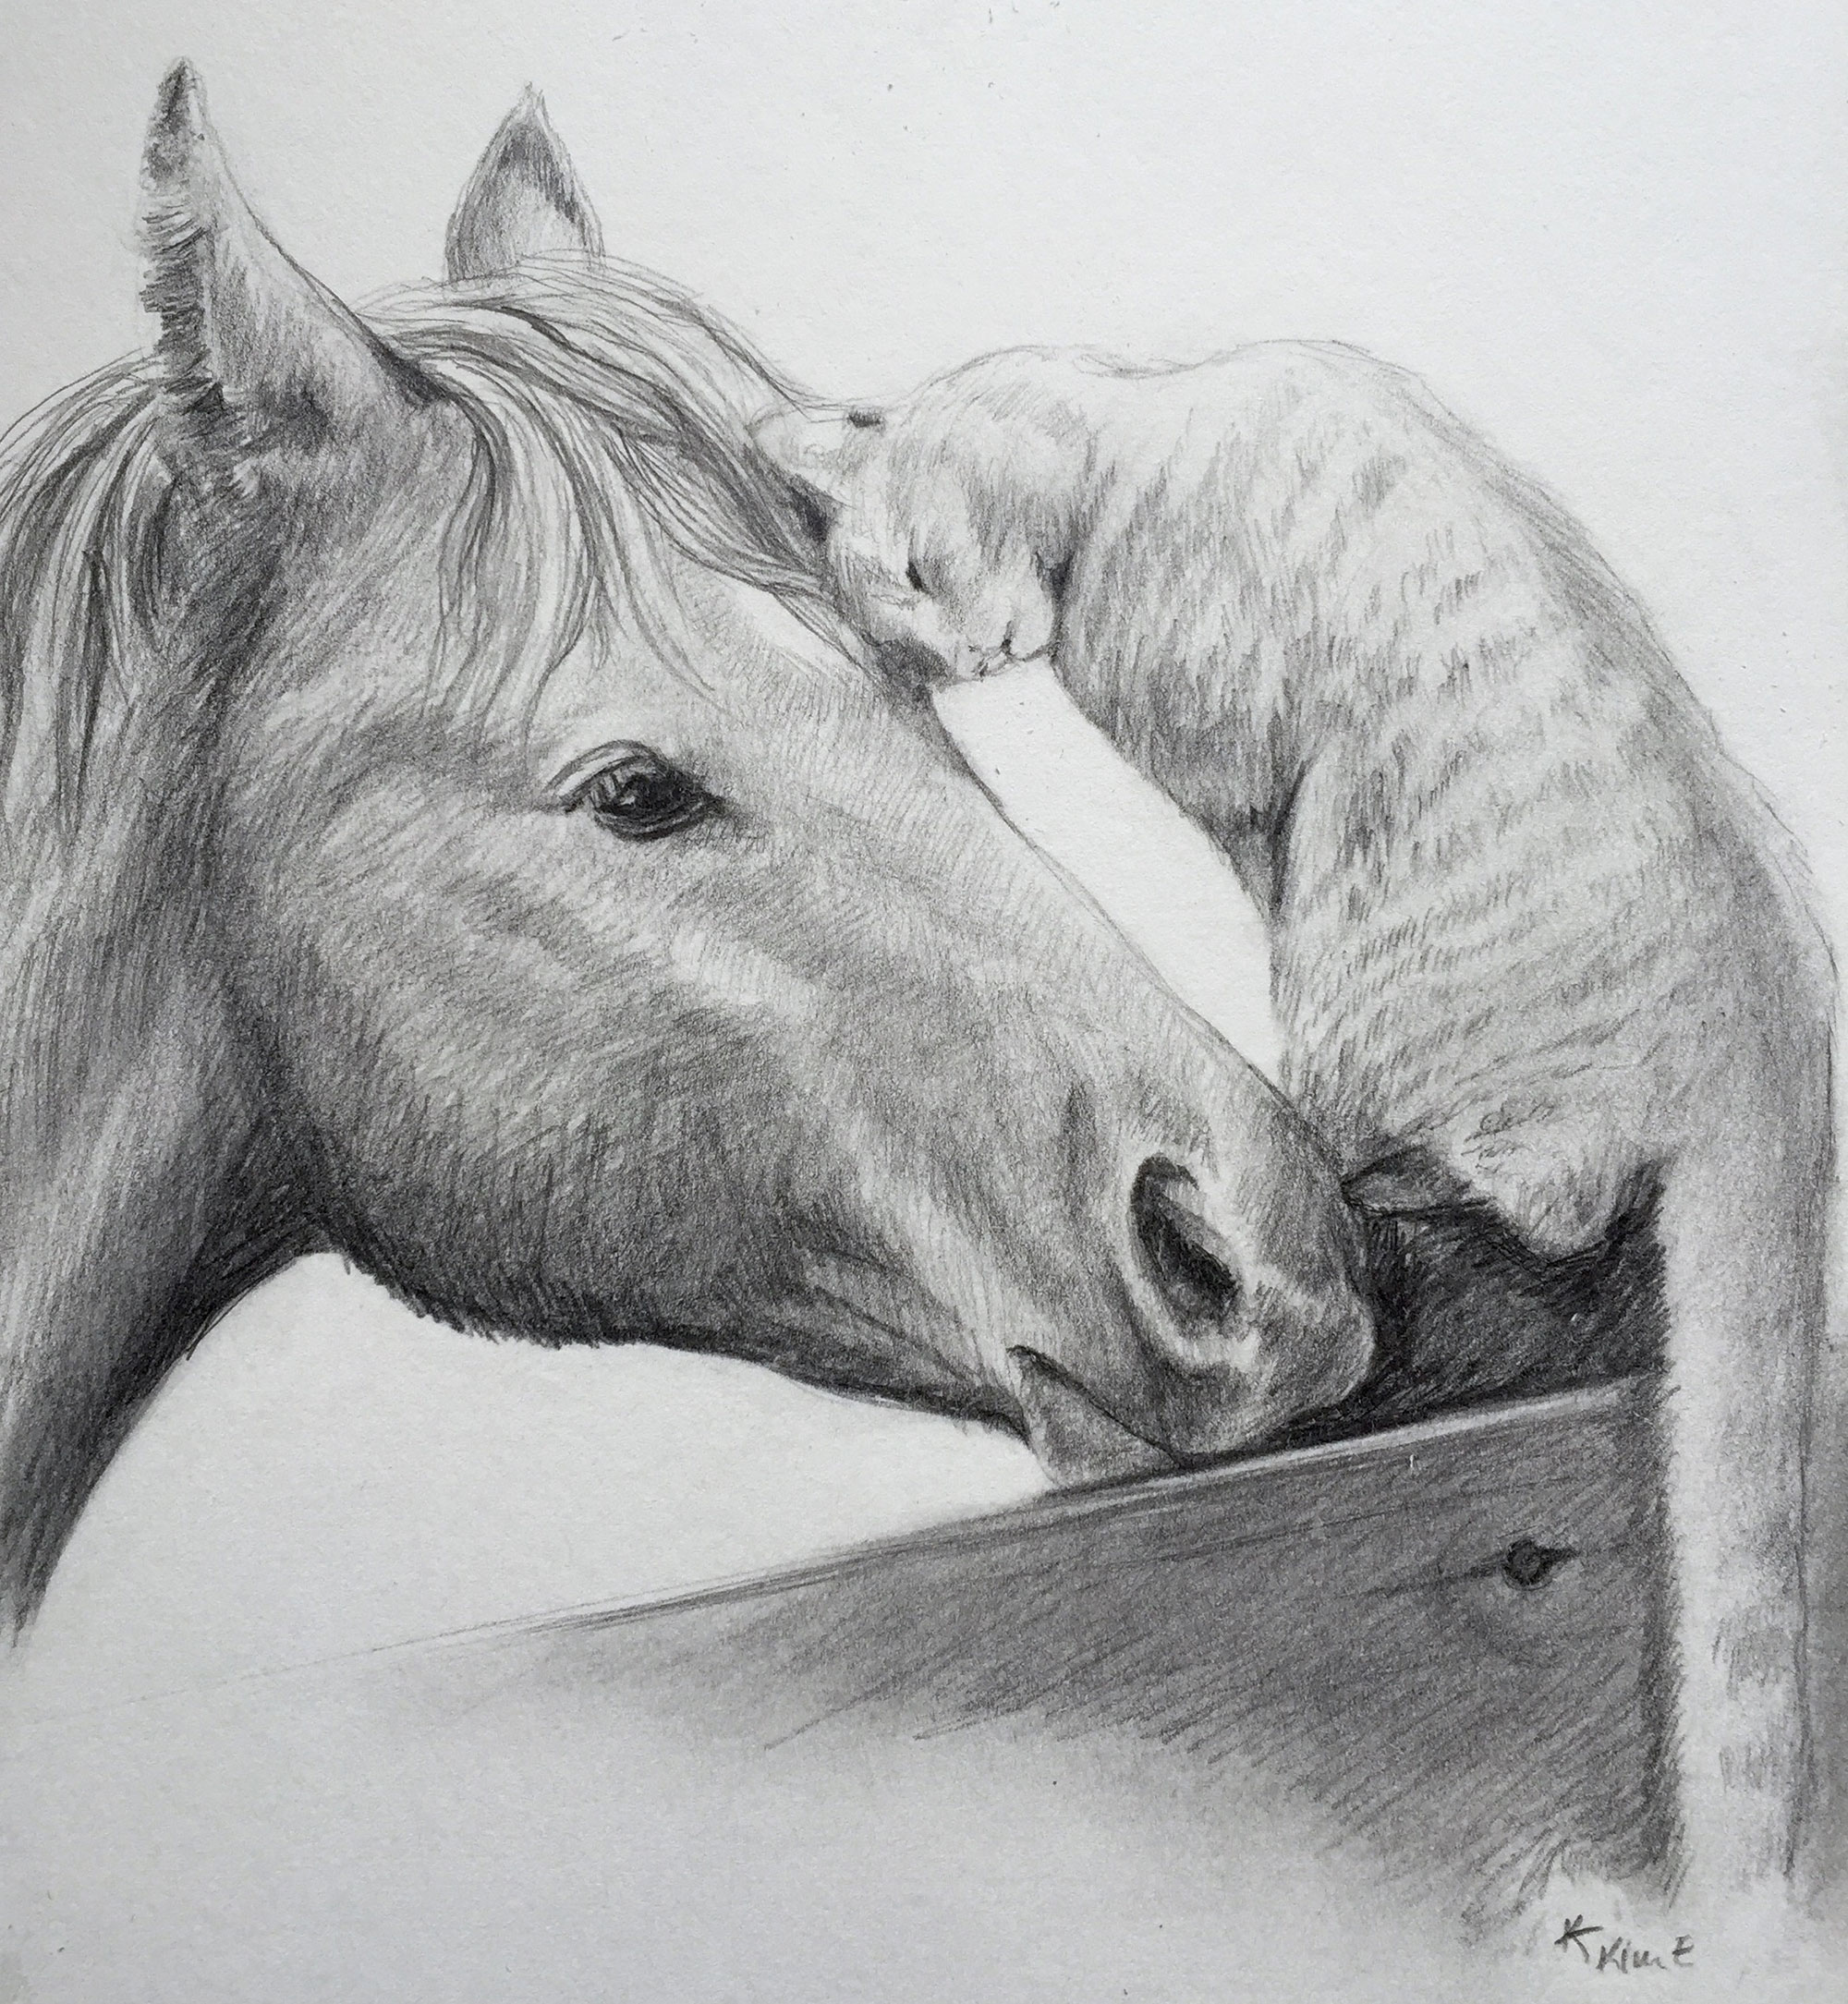 sketch of horse head and cat with its head against the horse